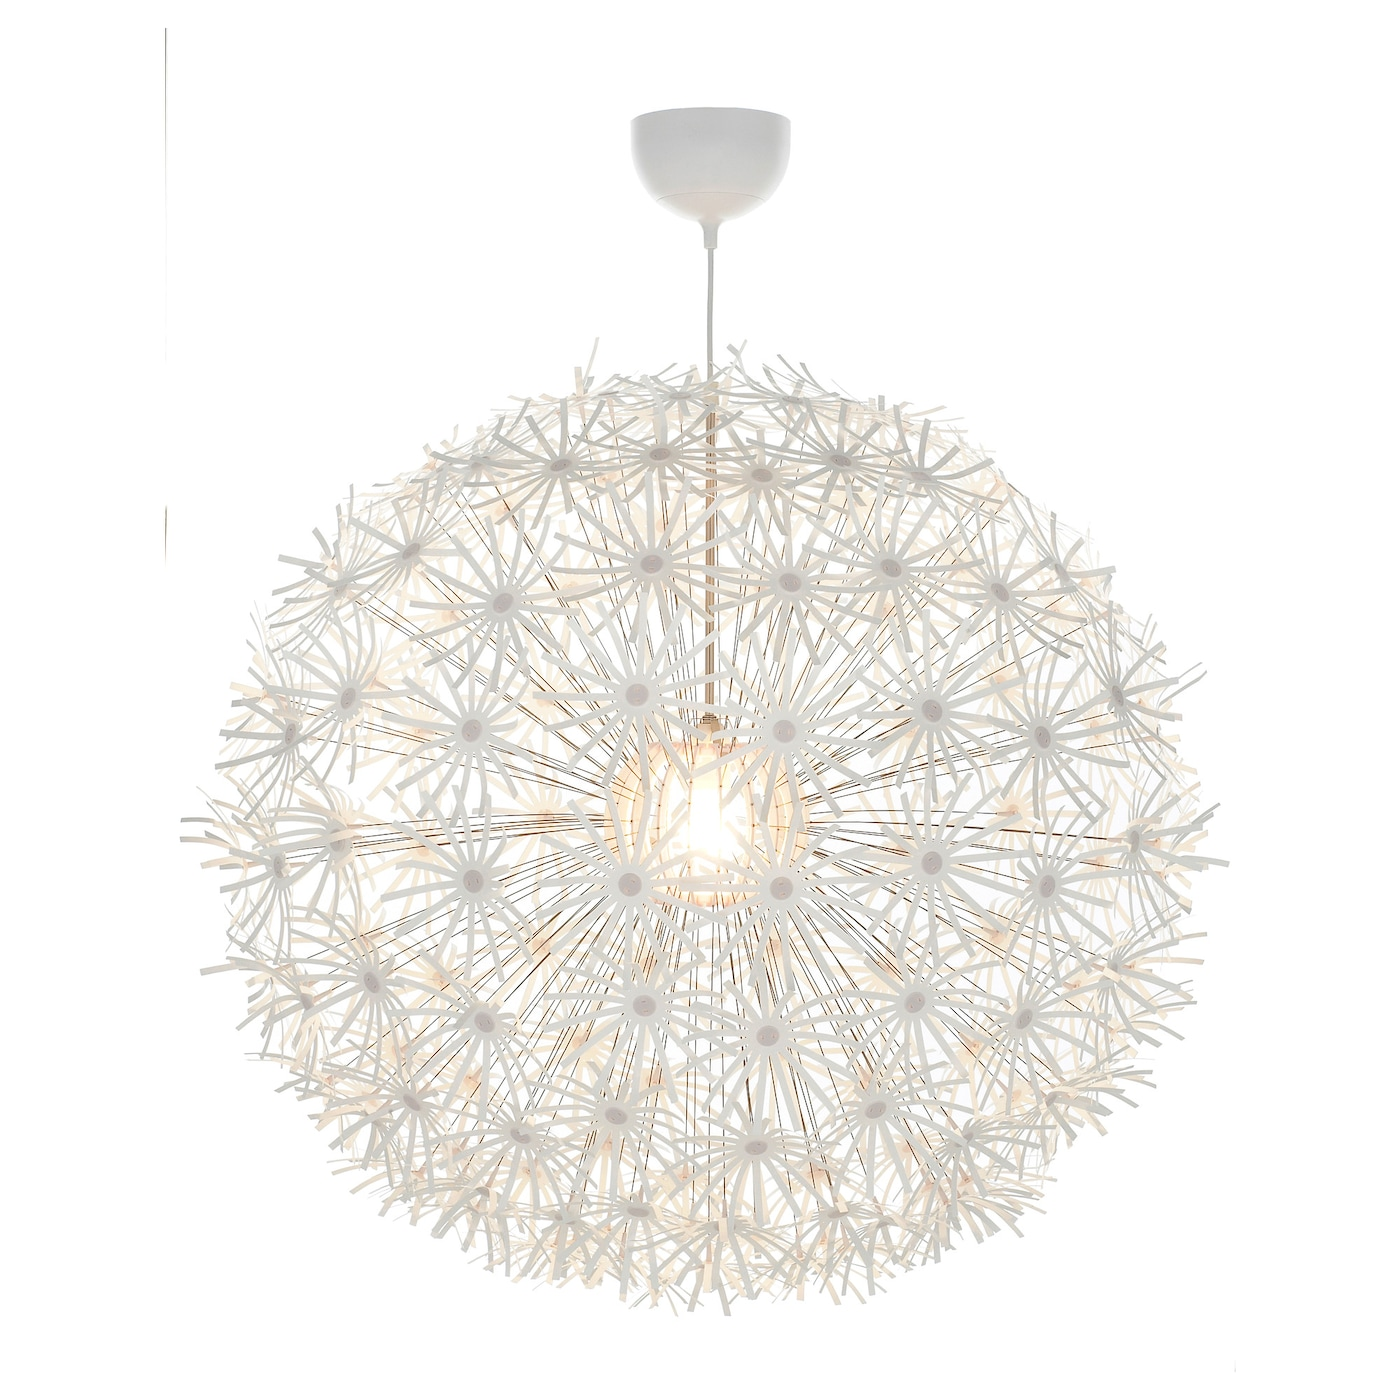 Pendant lighting pendant lamps chandeliers ikea ikea ikea ps maskros pendant lamp gives decorative patterns on the ceiling and on the wall aloadofball Images